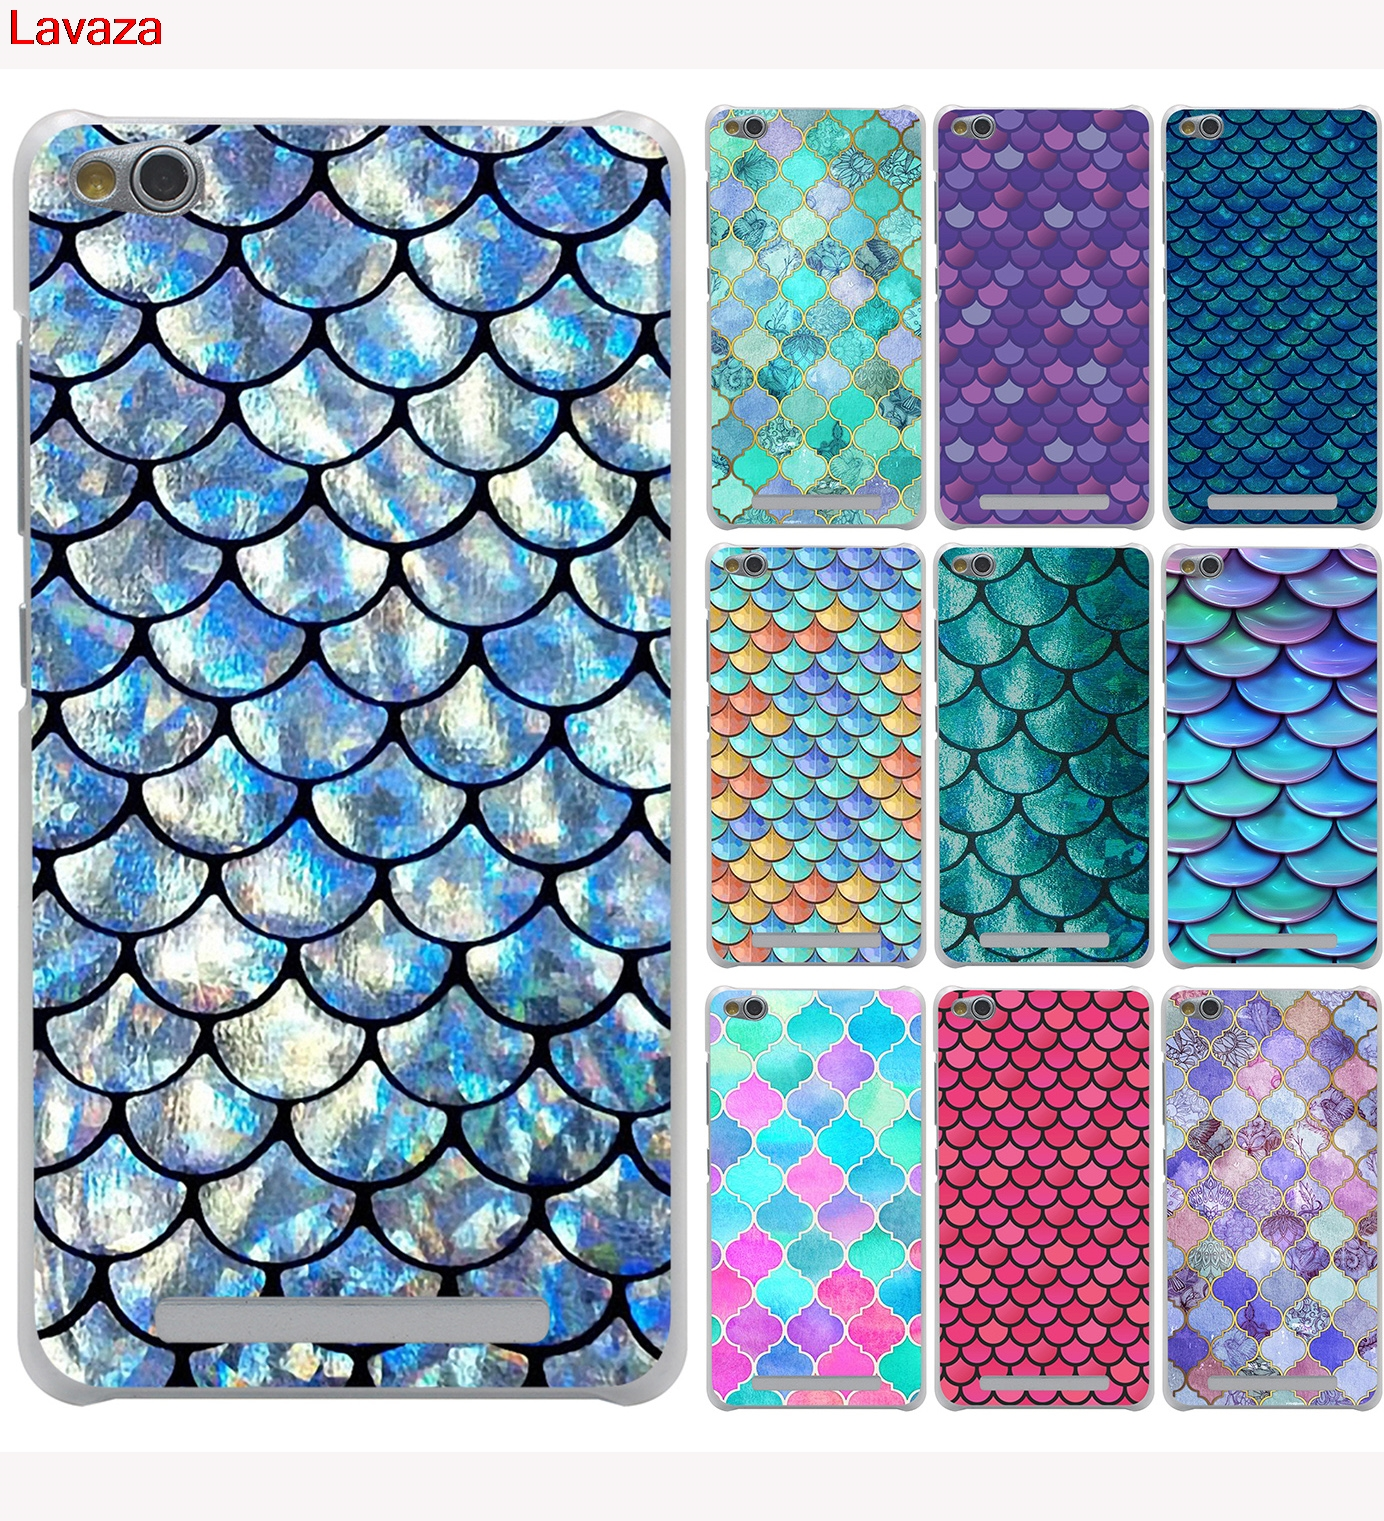 Lavaza Beautiful Mandalas Mermaid Scales Hard Case for Xiaomi Redmi 4X Mi A1 6 5 5X 5S Plus Note 5A 4A 3 3S 4 4X Pro Mi5X Mi6